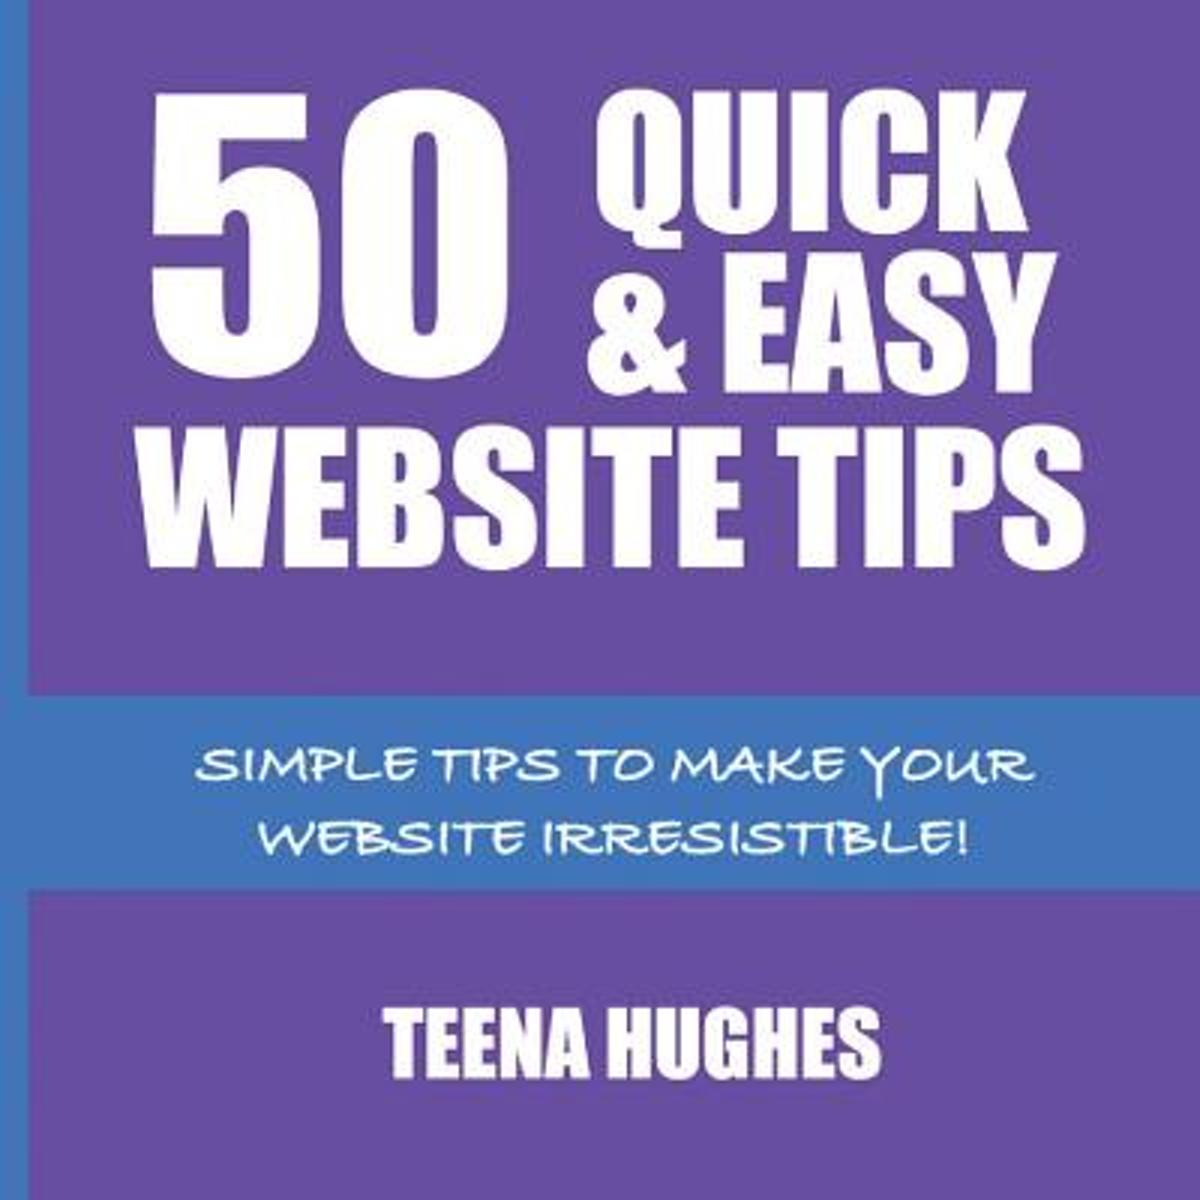 50 Quick & Easy Website Tips